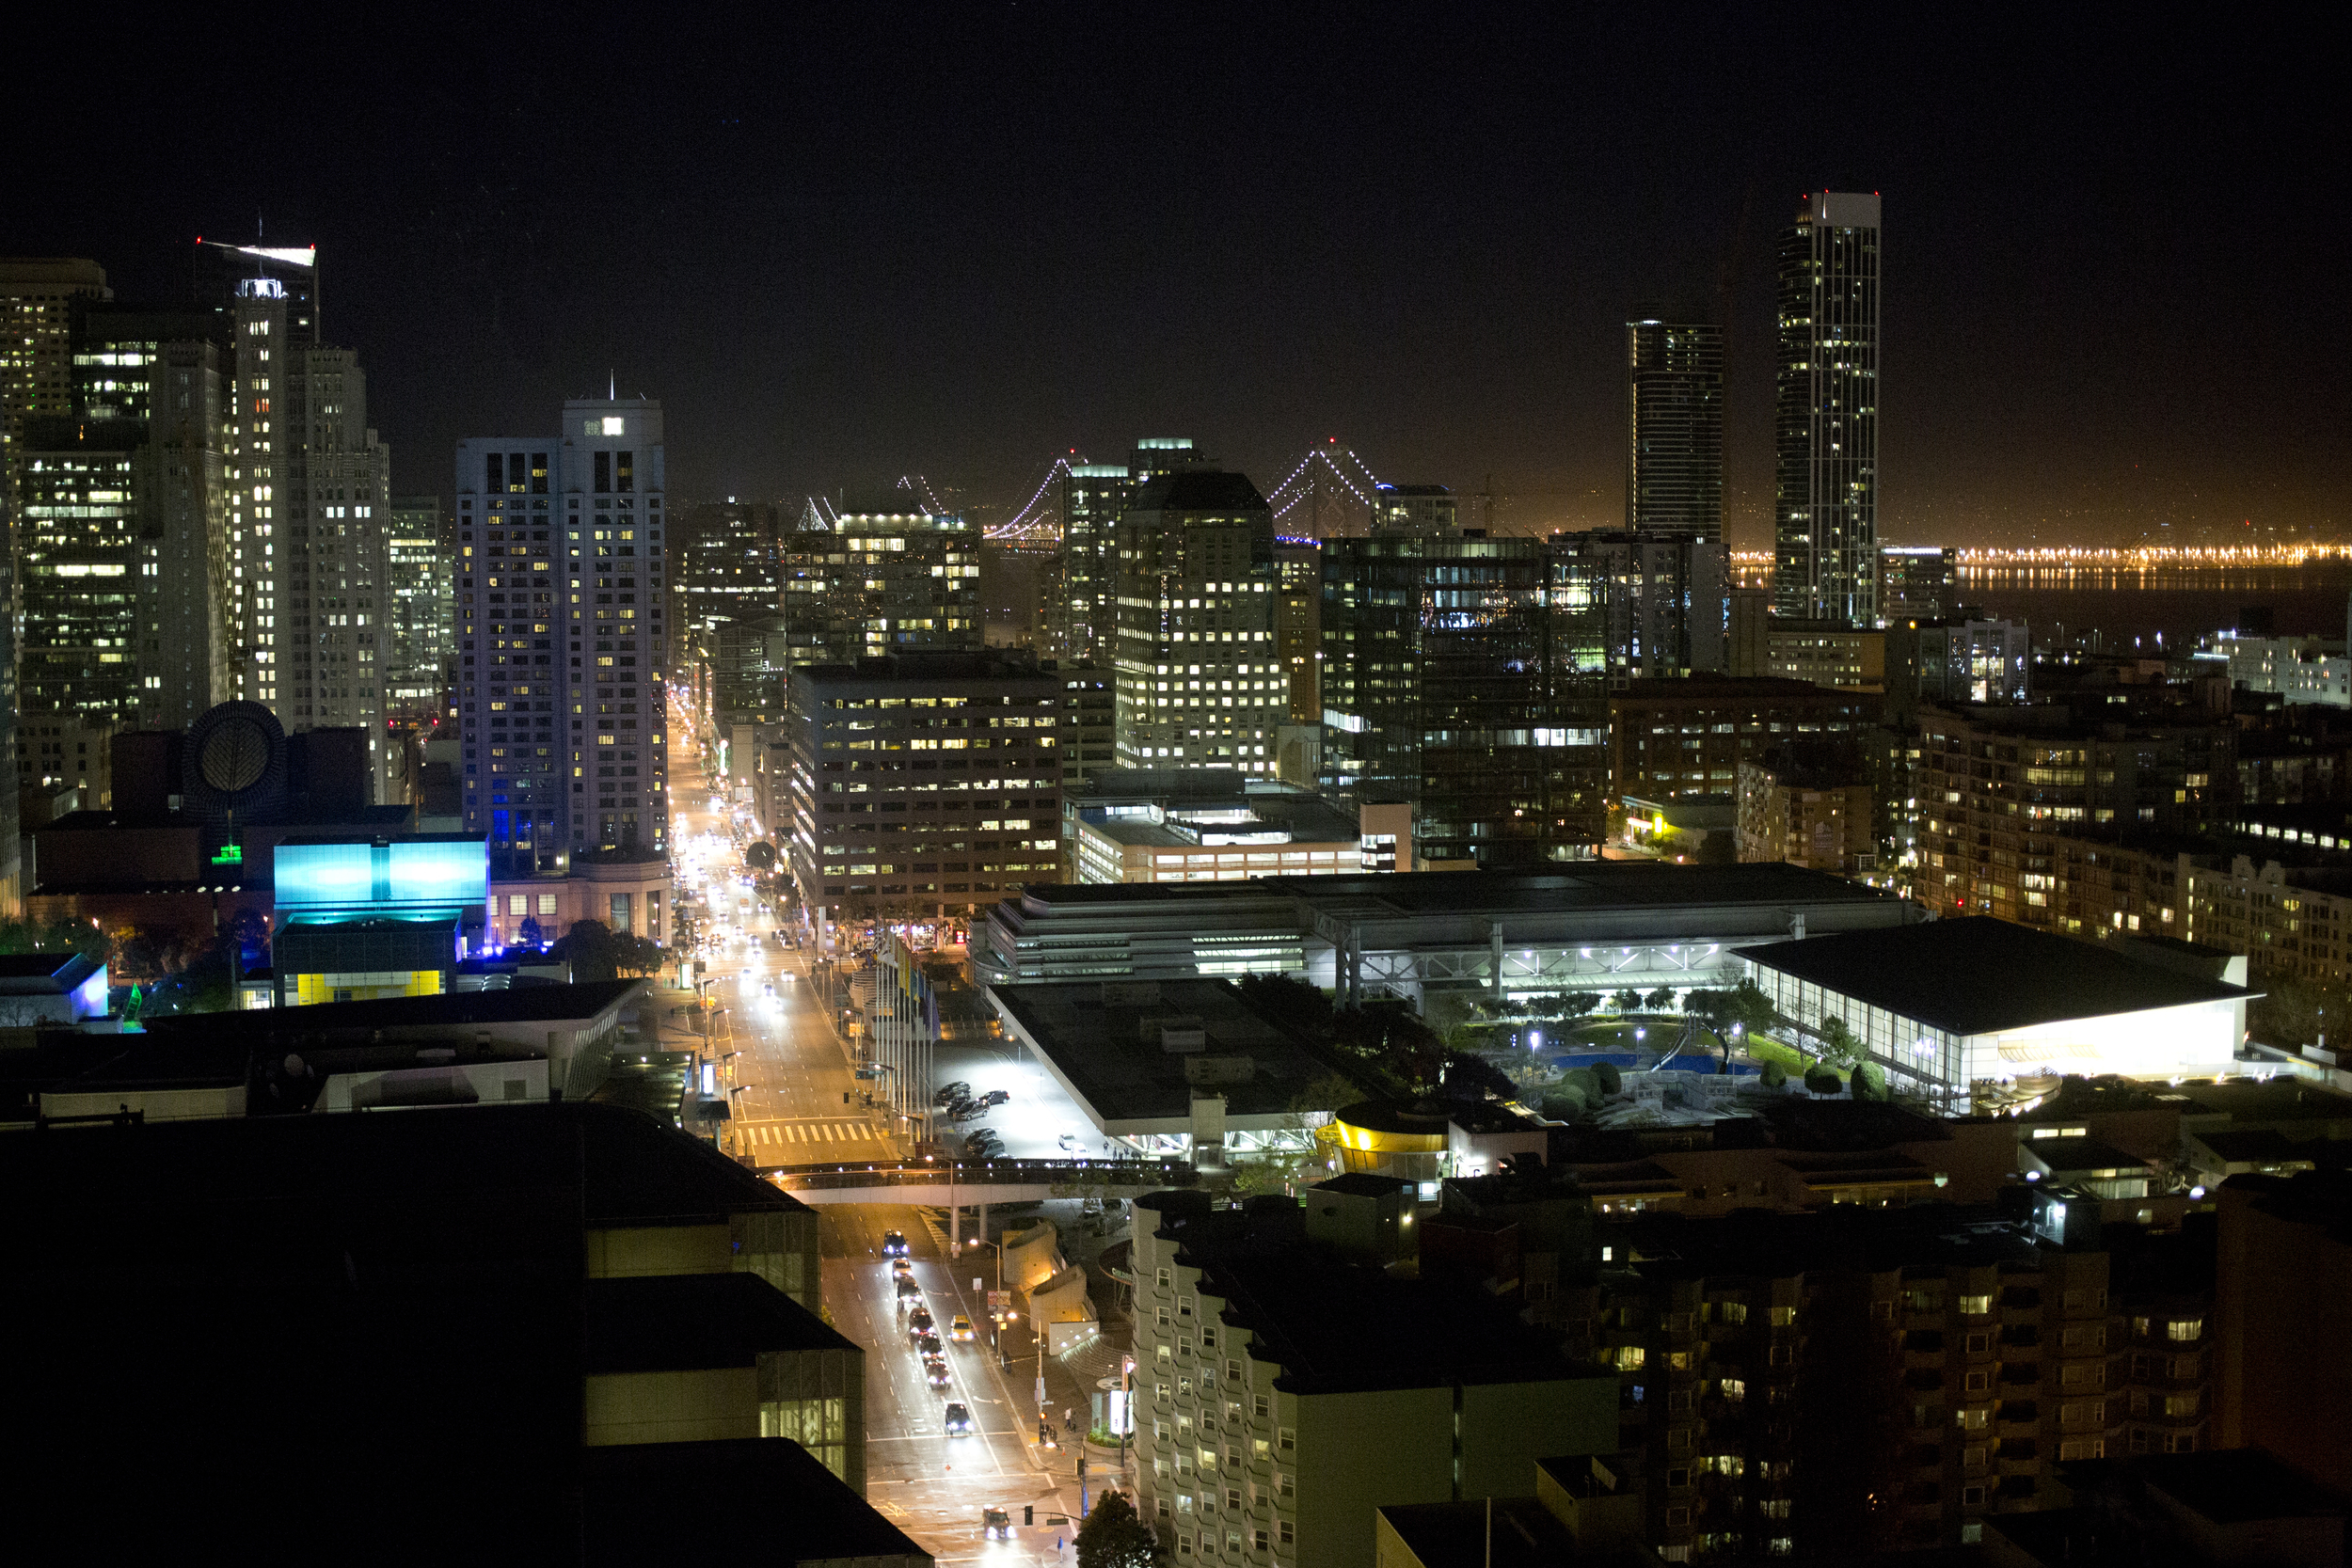 There were record high March temps last week at GDC, equally gorgeous at night!